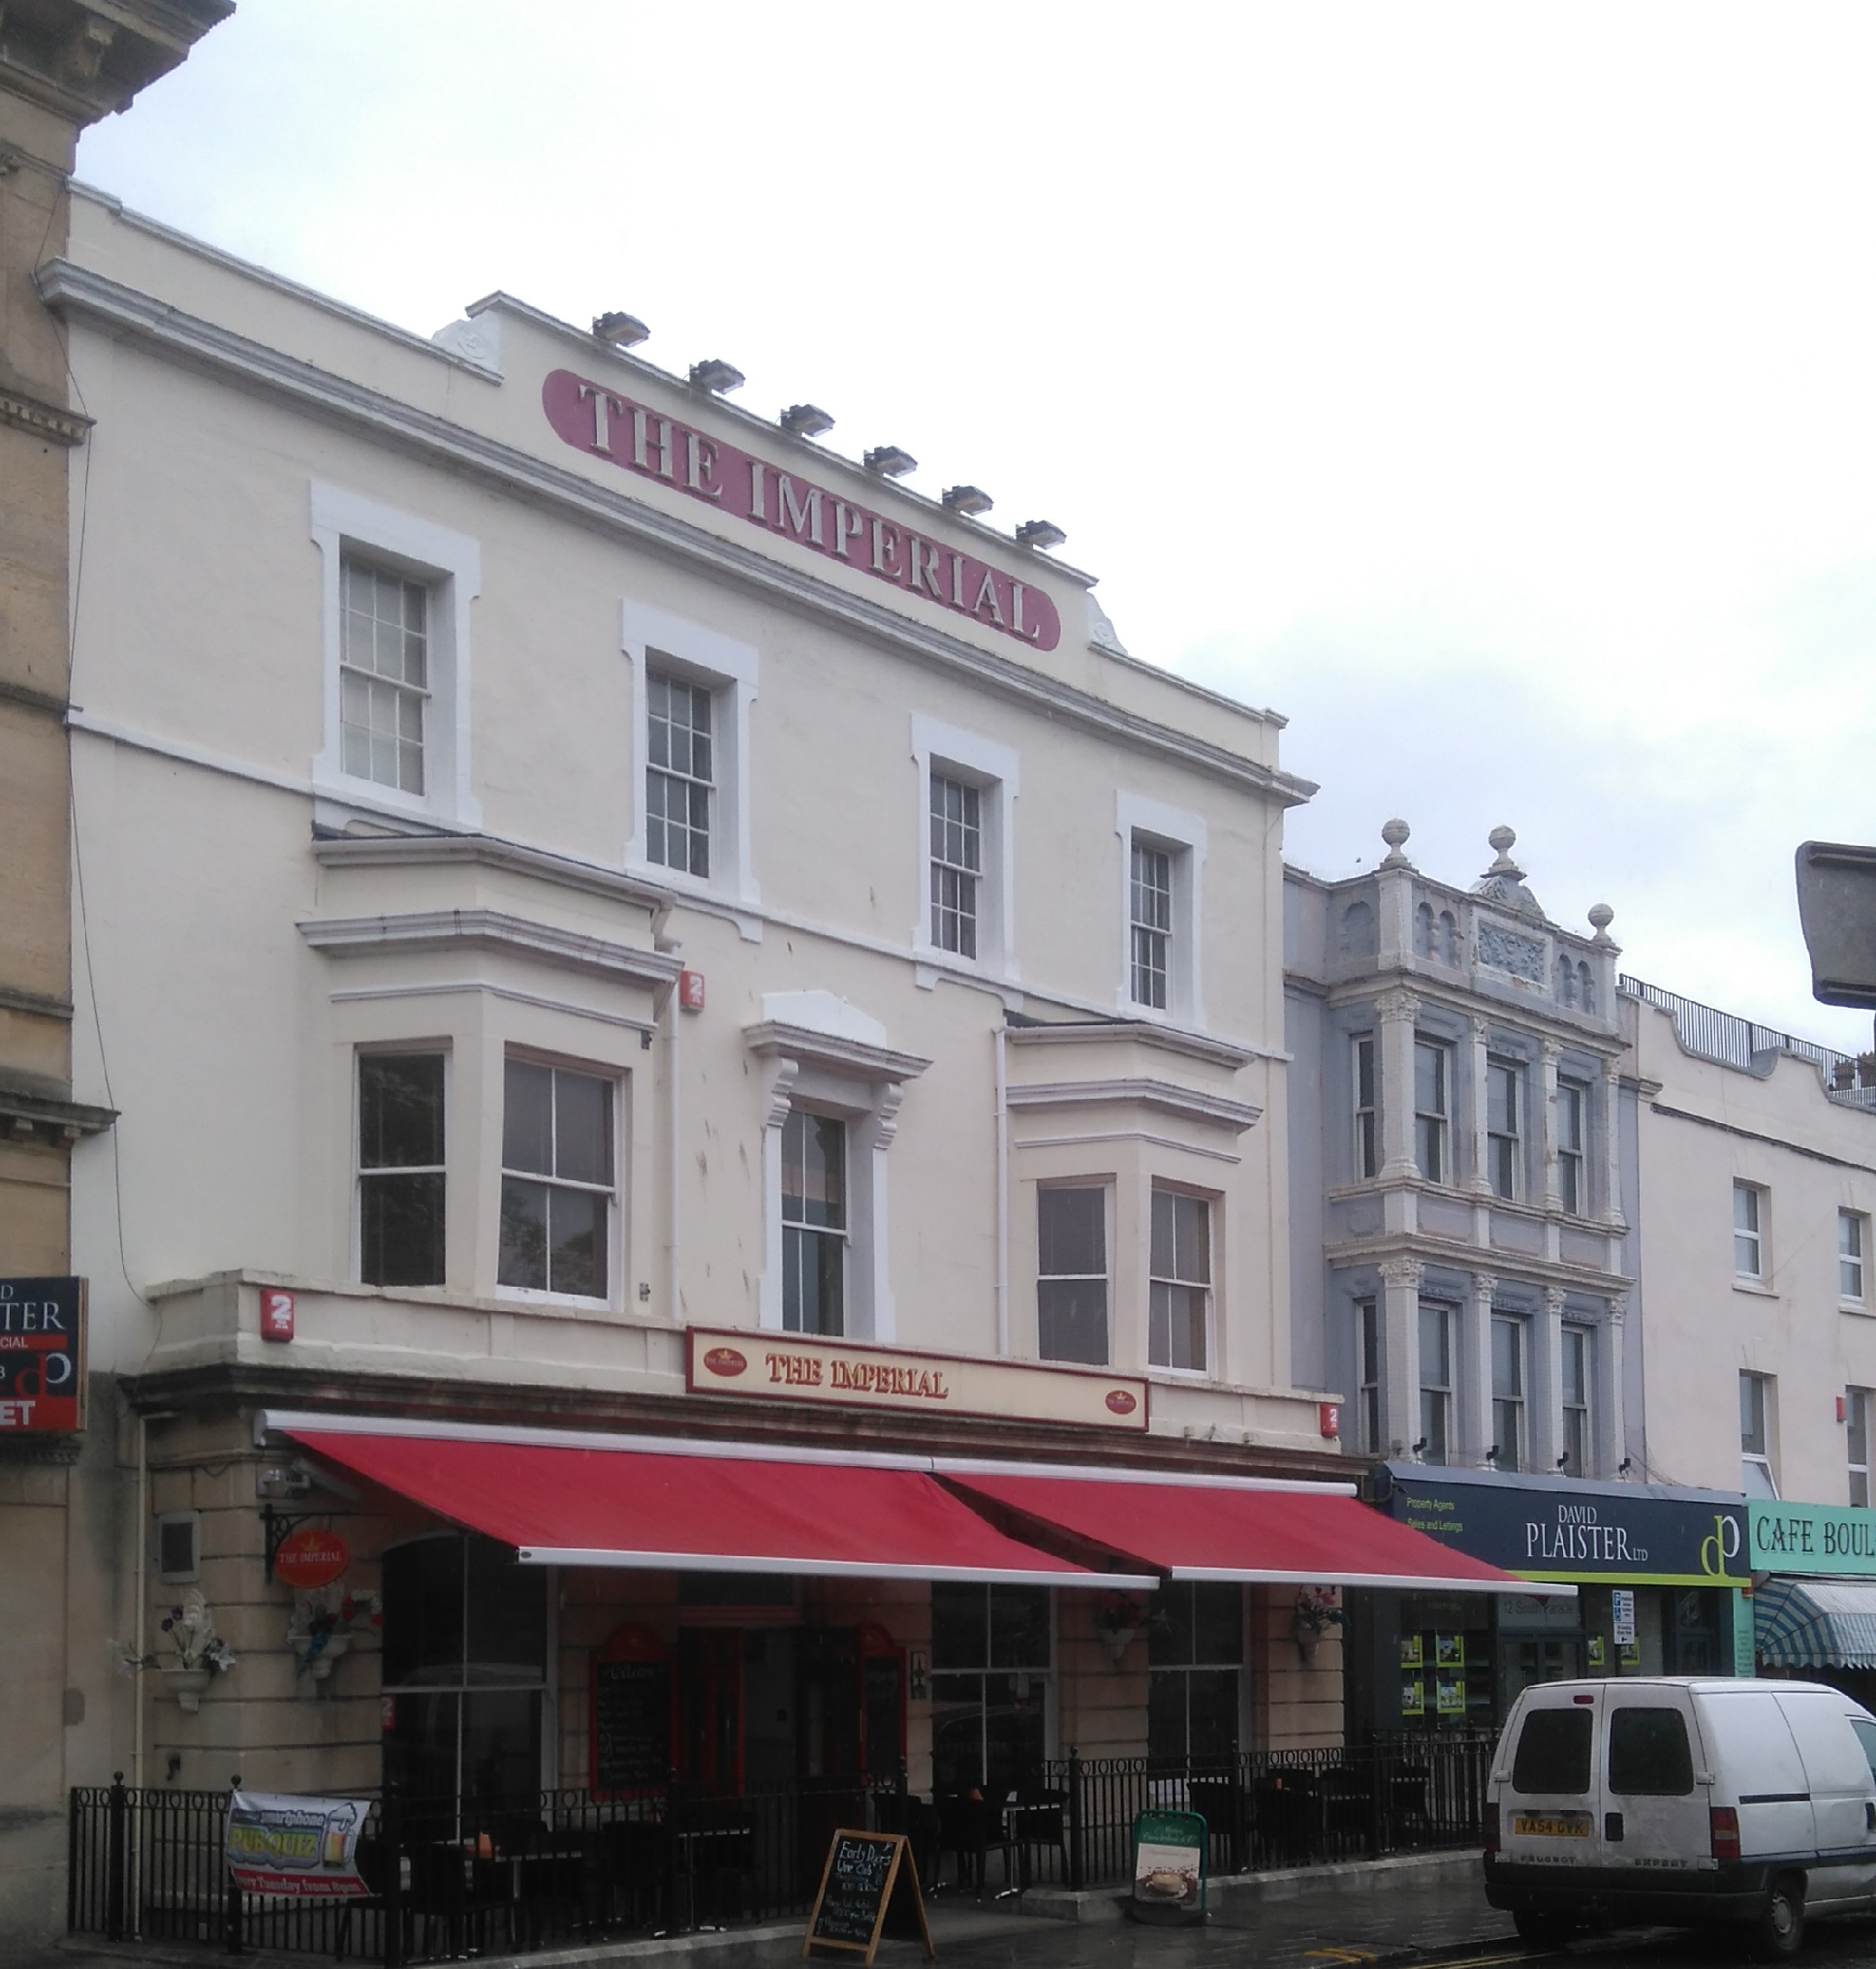 A three-storey white Victorian hotel with railings and red sun blinds. The words The Imperial are displayed at the roofline.